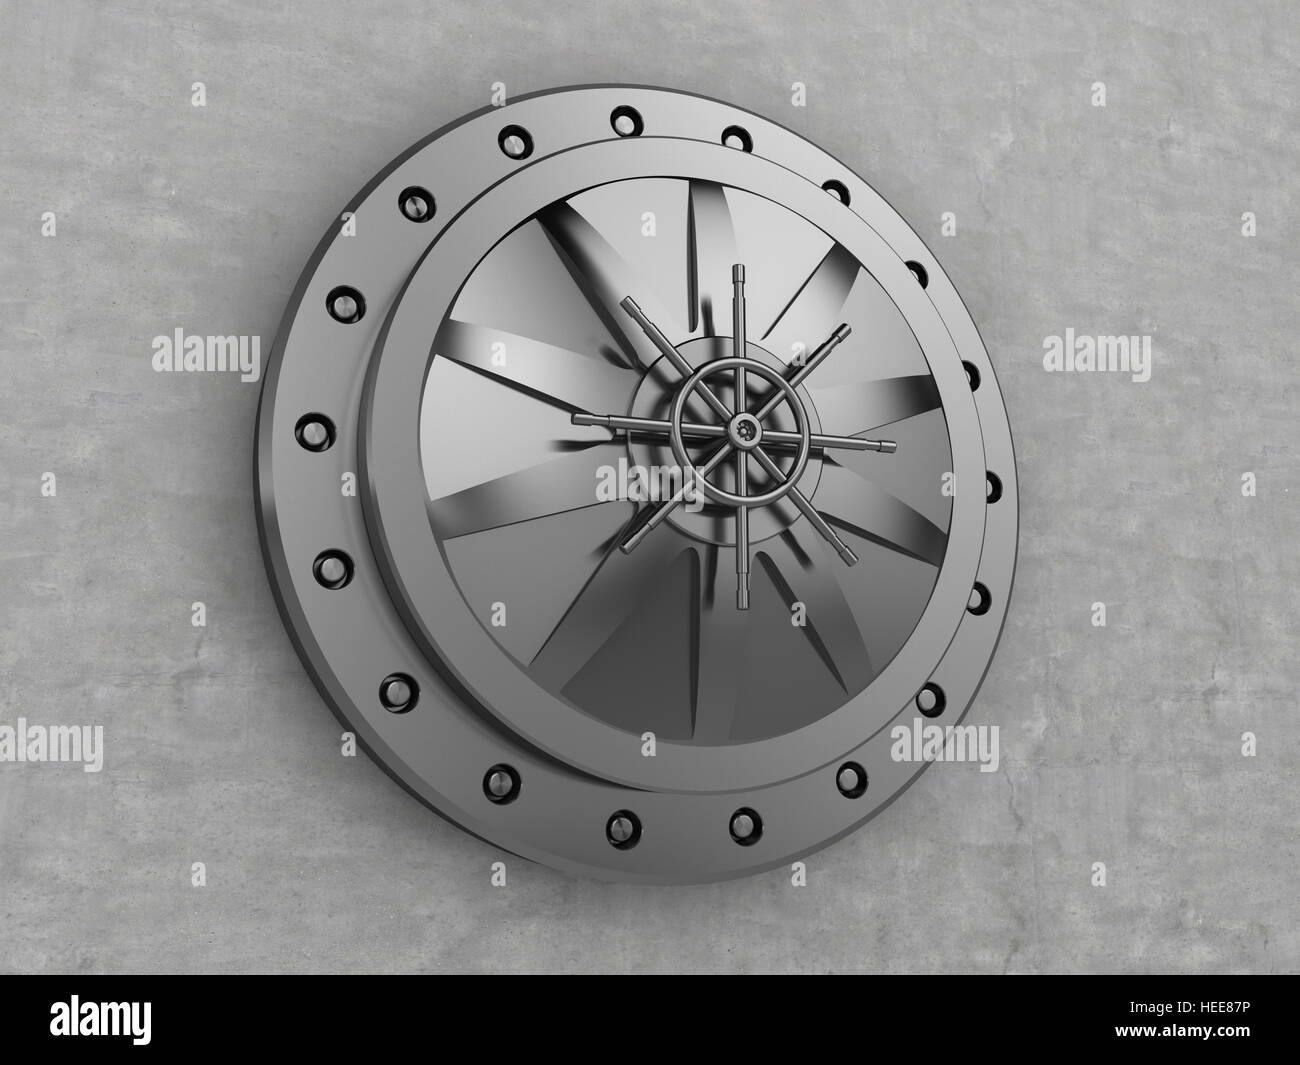 3d illustration of vault door and concrete wall - Stock Image